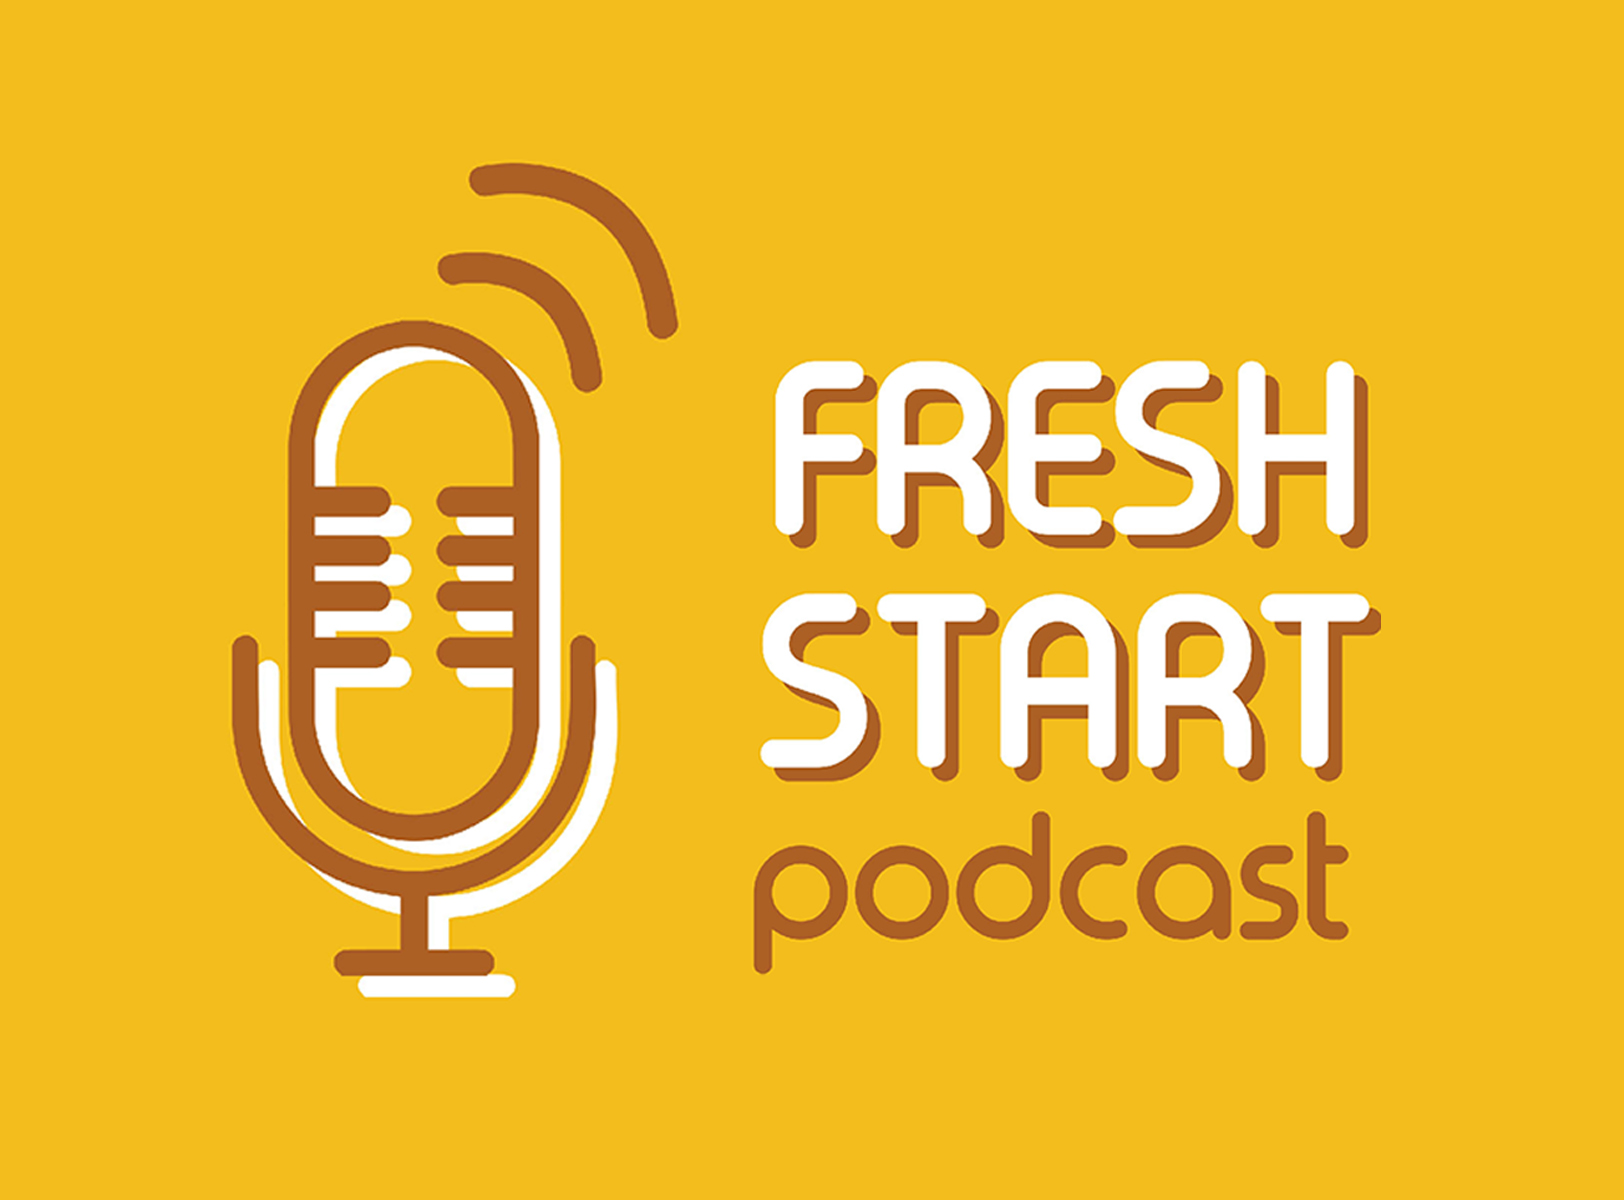 Fresh Start: Podcast News (5/11/2020 Mon.)